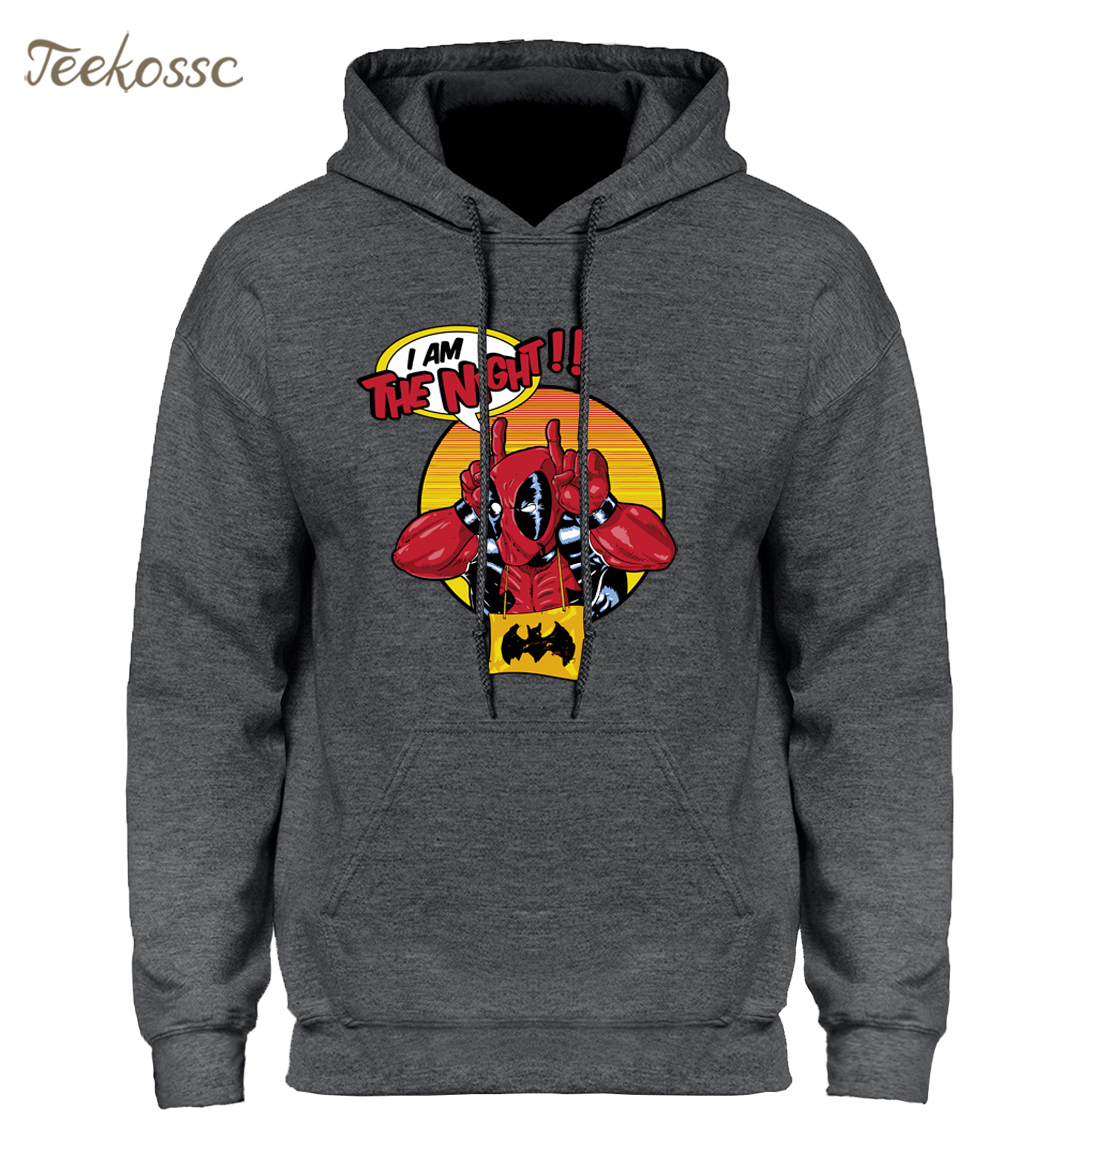 Deadpool Hoodie Mens I Am The Night Hooded Sweatshirt Funny Dead Pool Hoodies Mens 2018 Winter Autumn Black White Sweatshirts